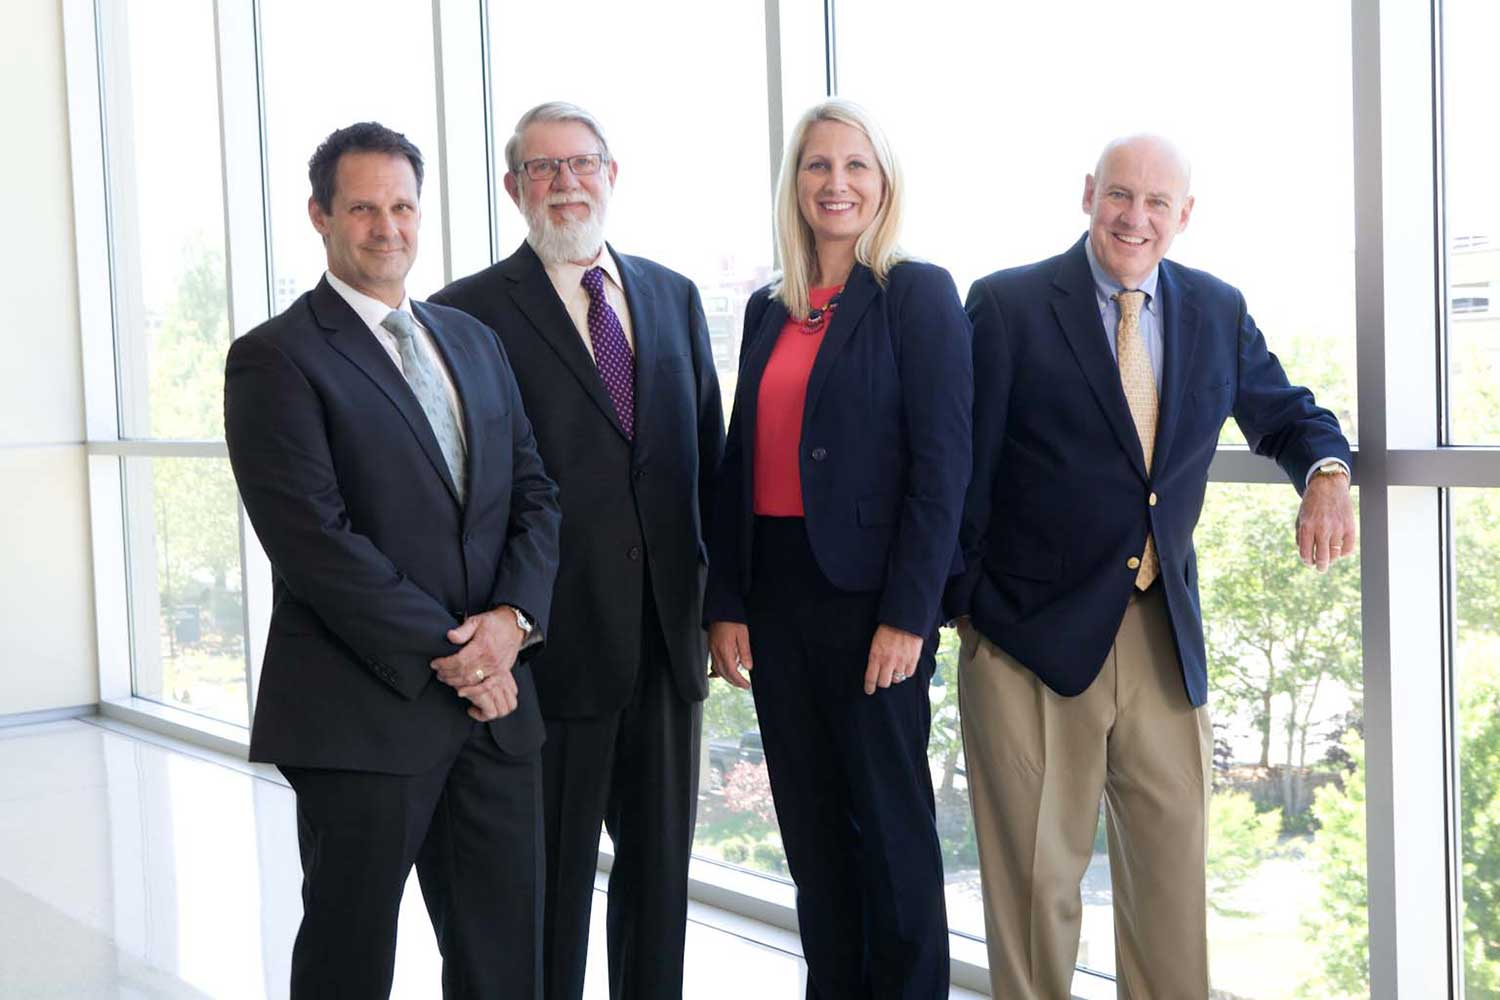 Image of Attorneys Patrick McCroskey, Howard Gum, Janet Amburgey, and David Hillier taken on location at the Buncombe County Justice Center in 2017